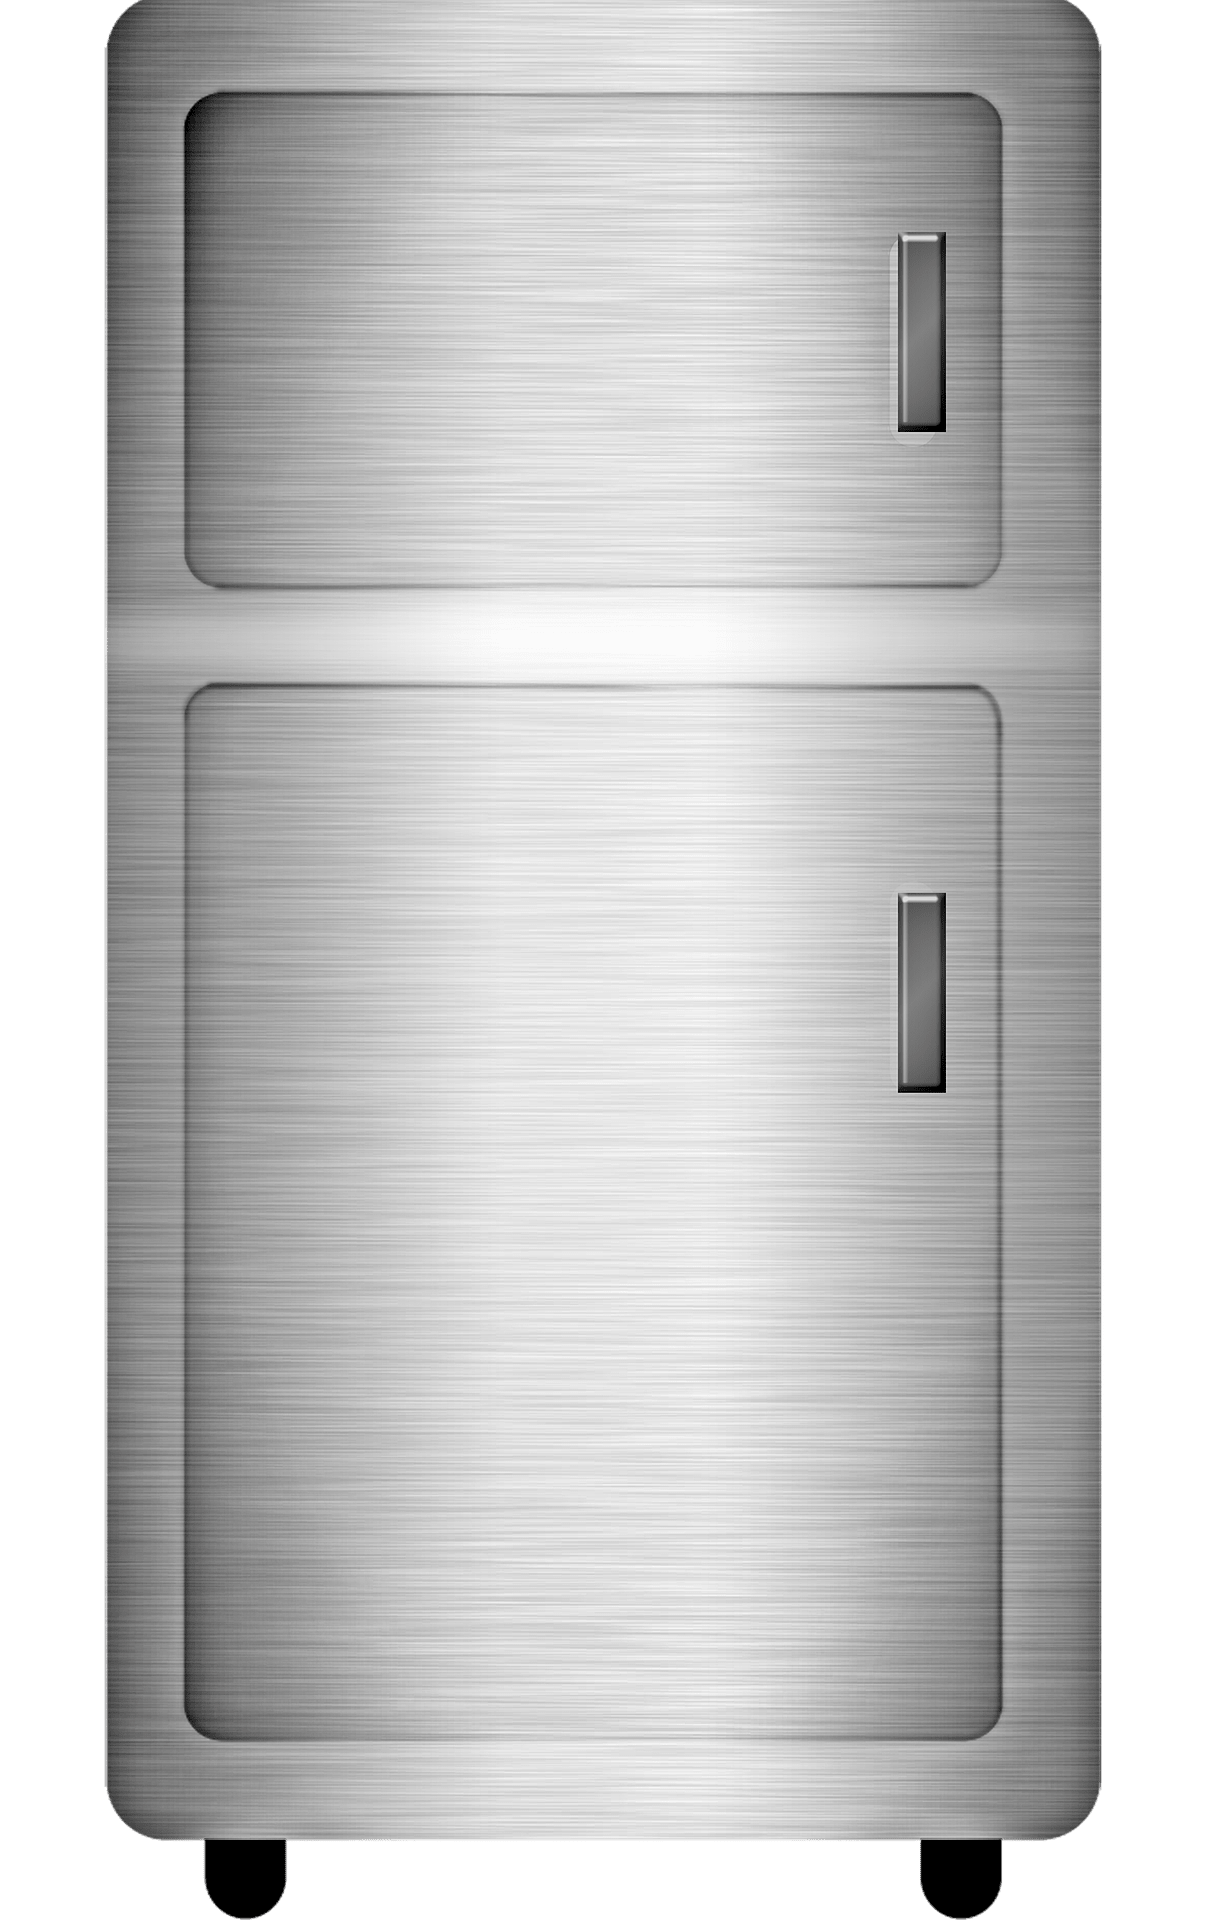 gray fridge